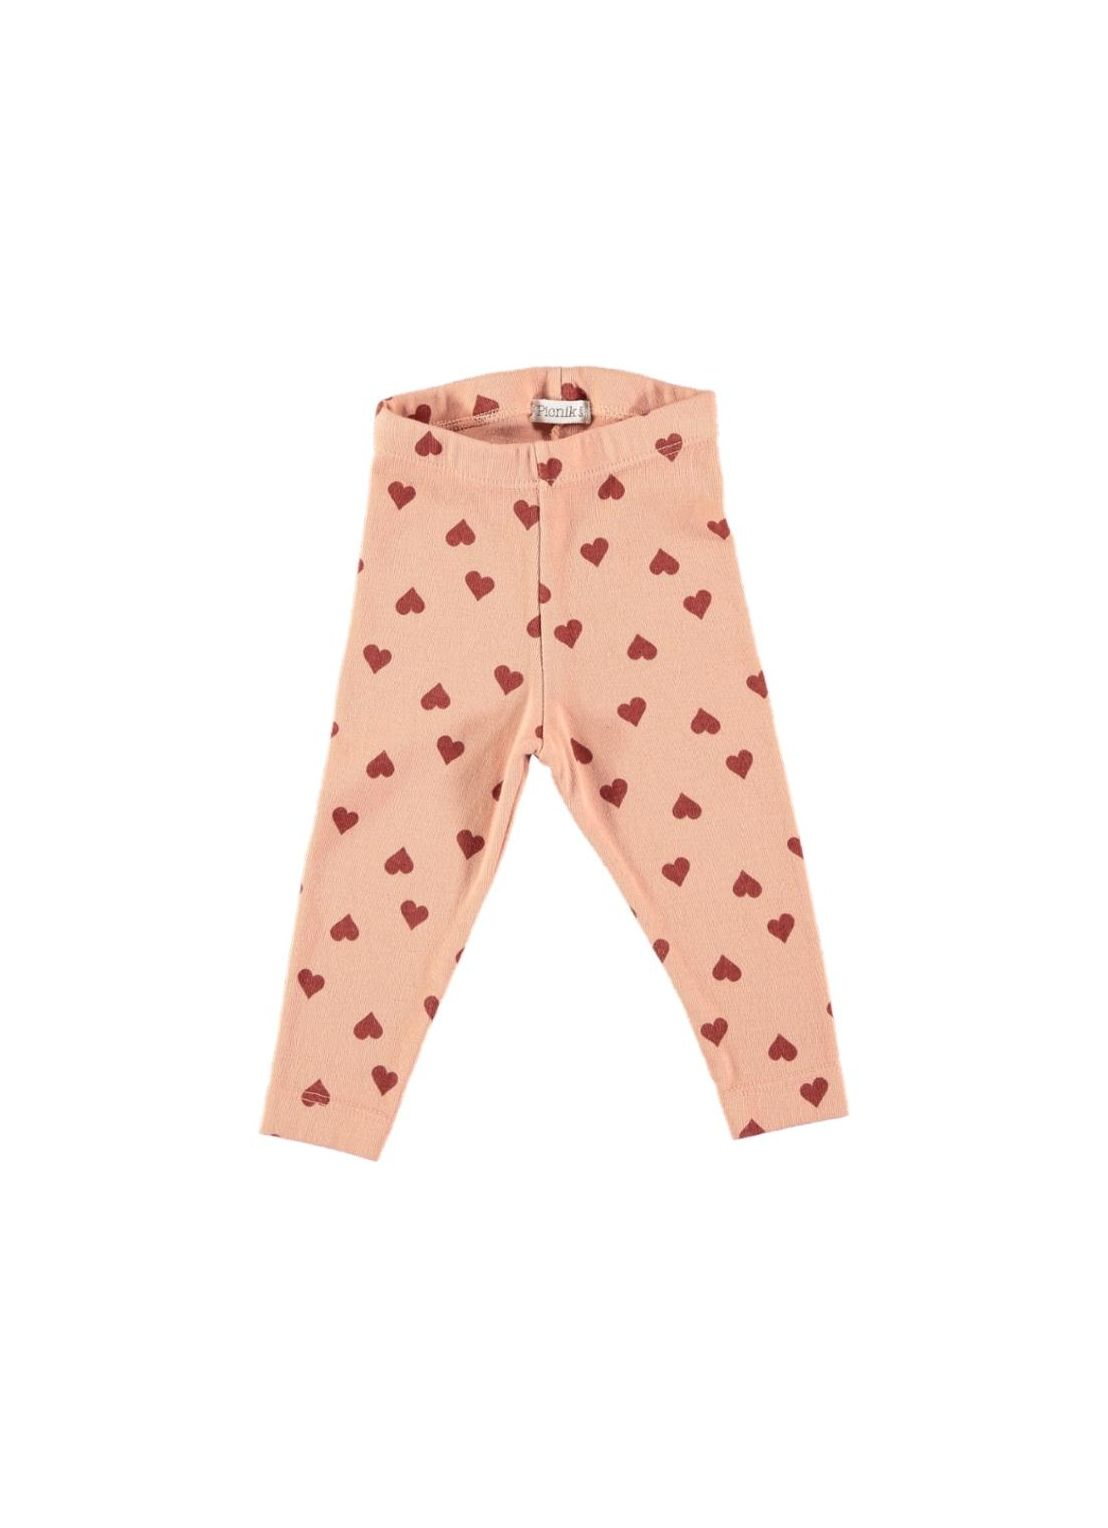 Baby TROUSERS  Unisex - 95% Organic Cotton 5% Elastan- knitted